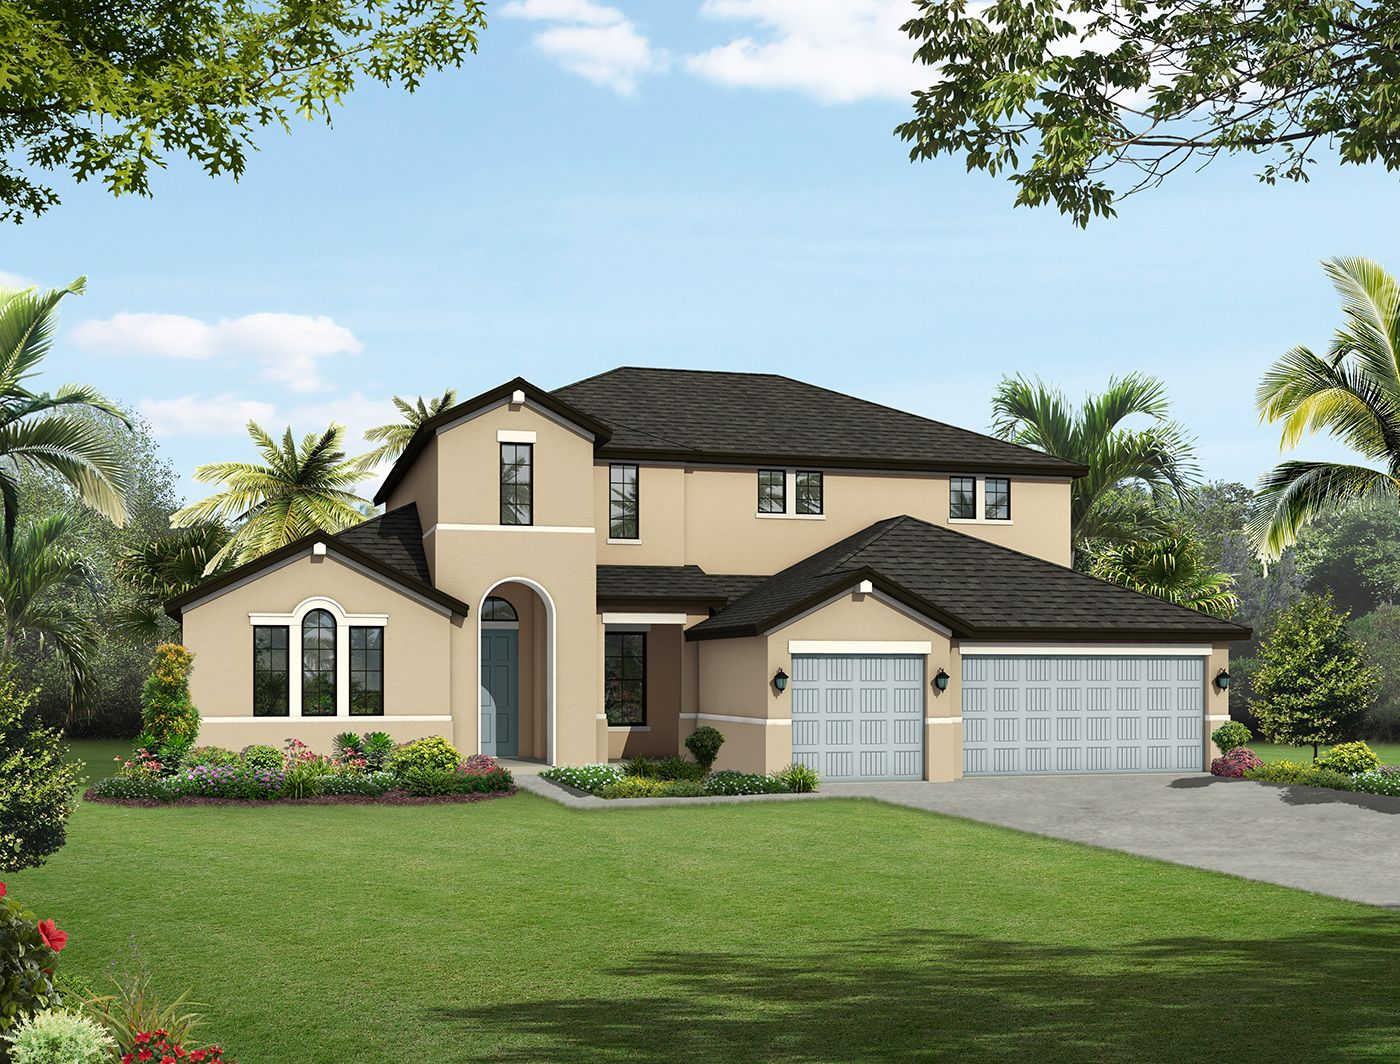 Single Family للـ Sale في The Manors At Lake Padgett - Augusta 21423 Carson Dr. Land O' Lakes, Florida 34639 United States